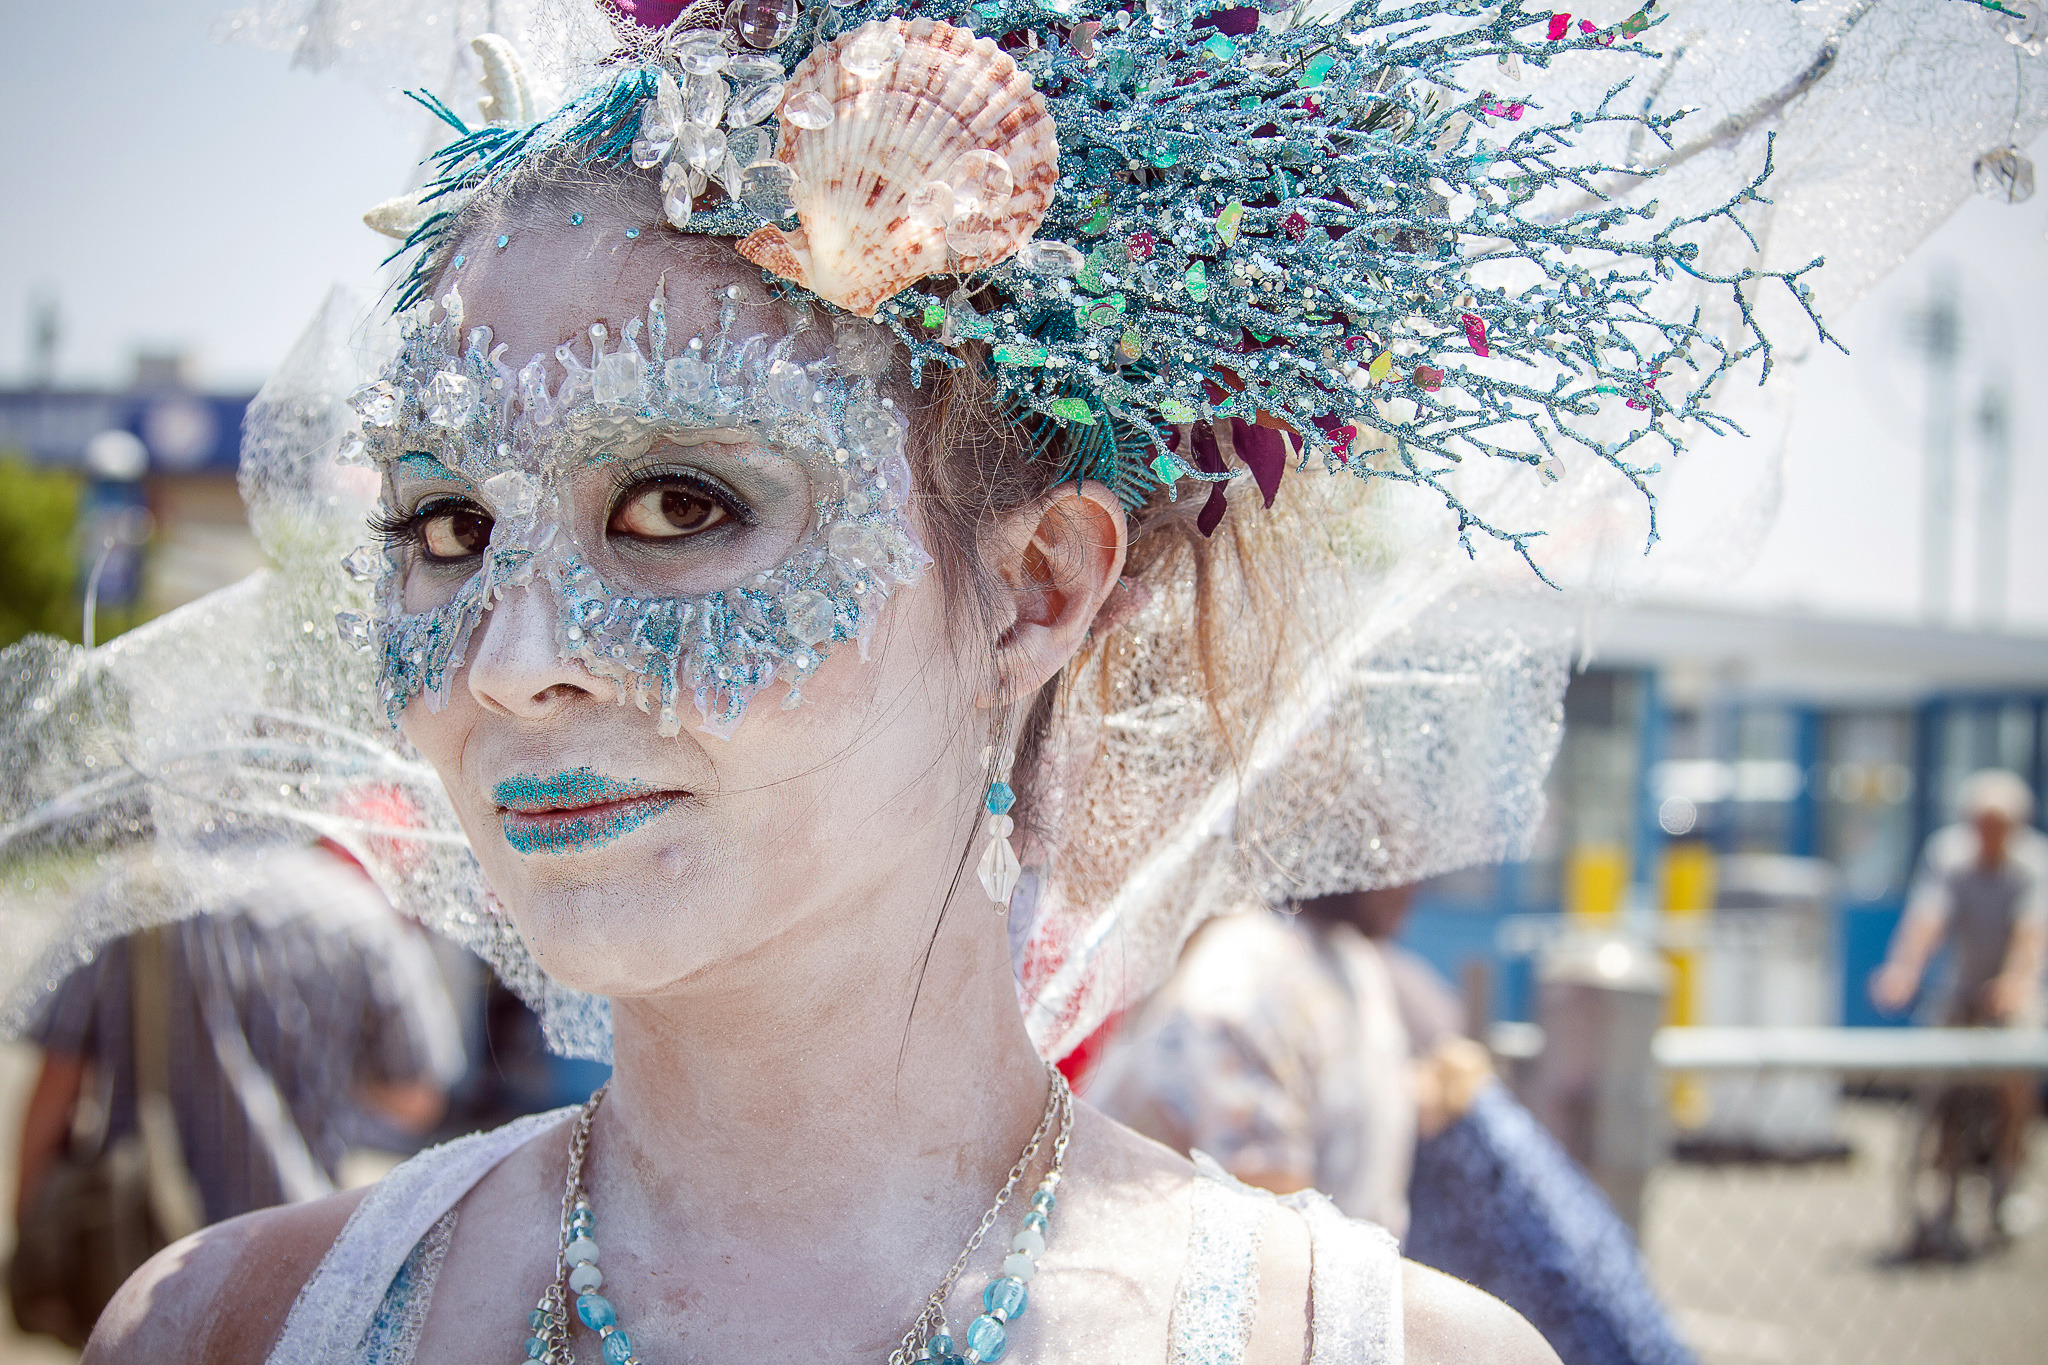 Mermaid Parade 2013